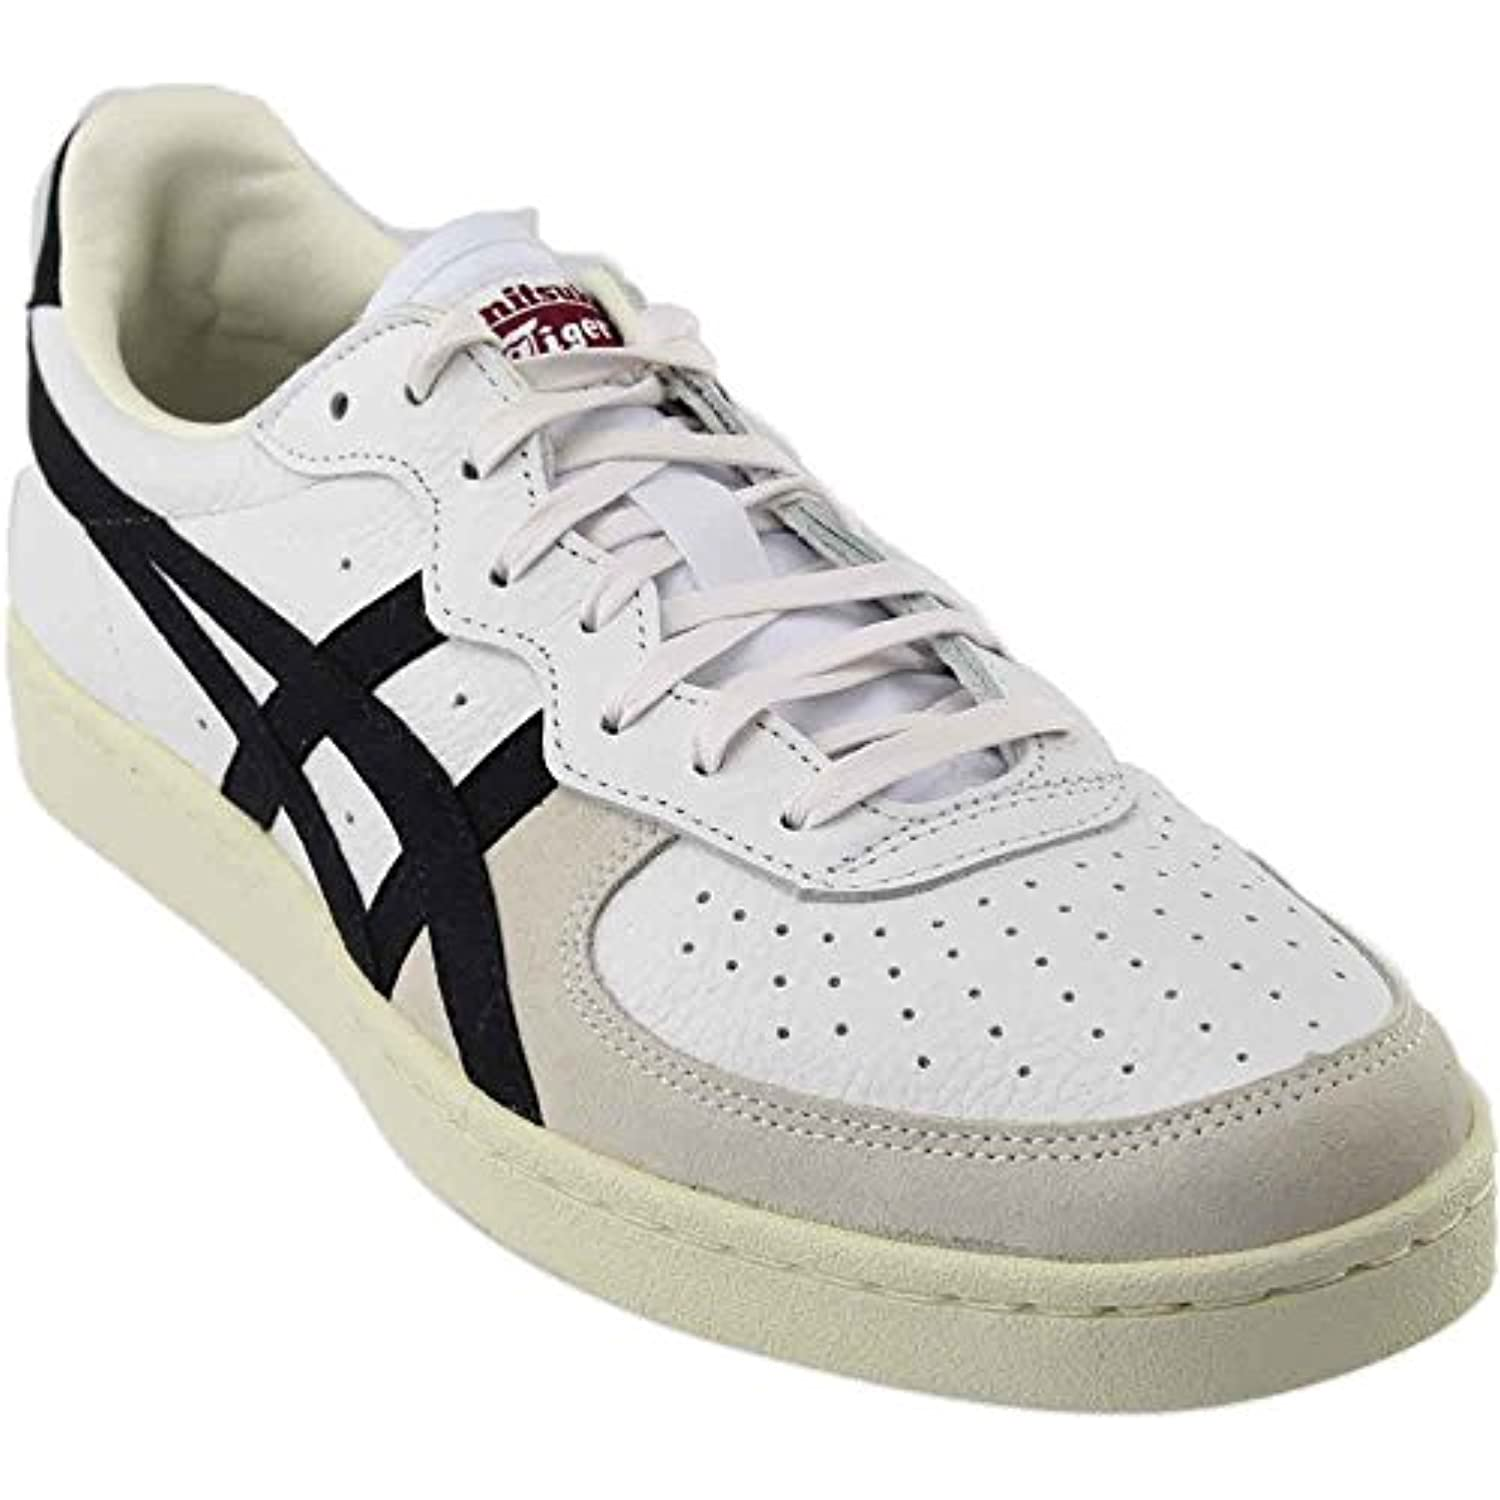 Asics Tiger Onitsuka Tiger Asics - Sneakers GSM Unisexes-Adultes - B073MSVSBY - ff86a4